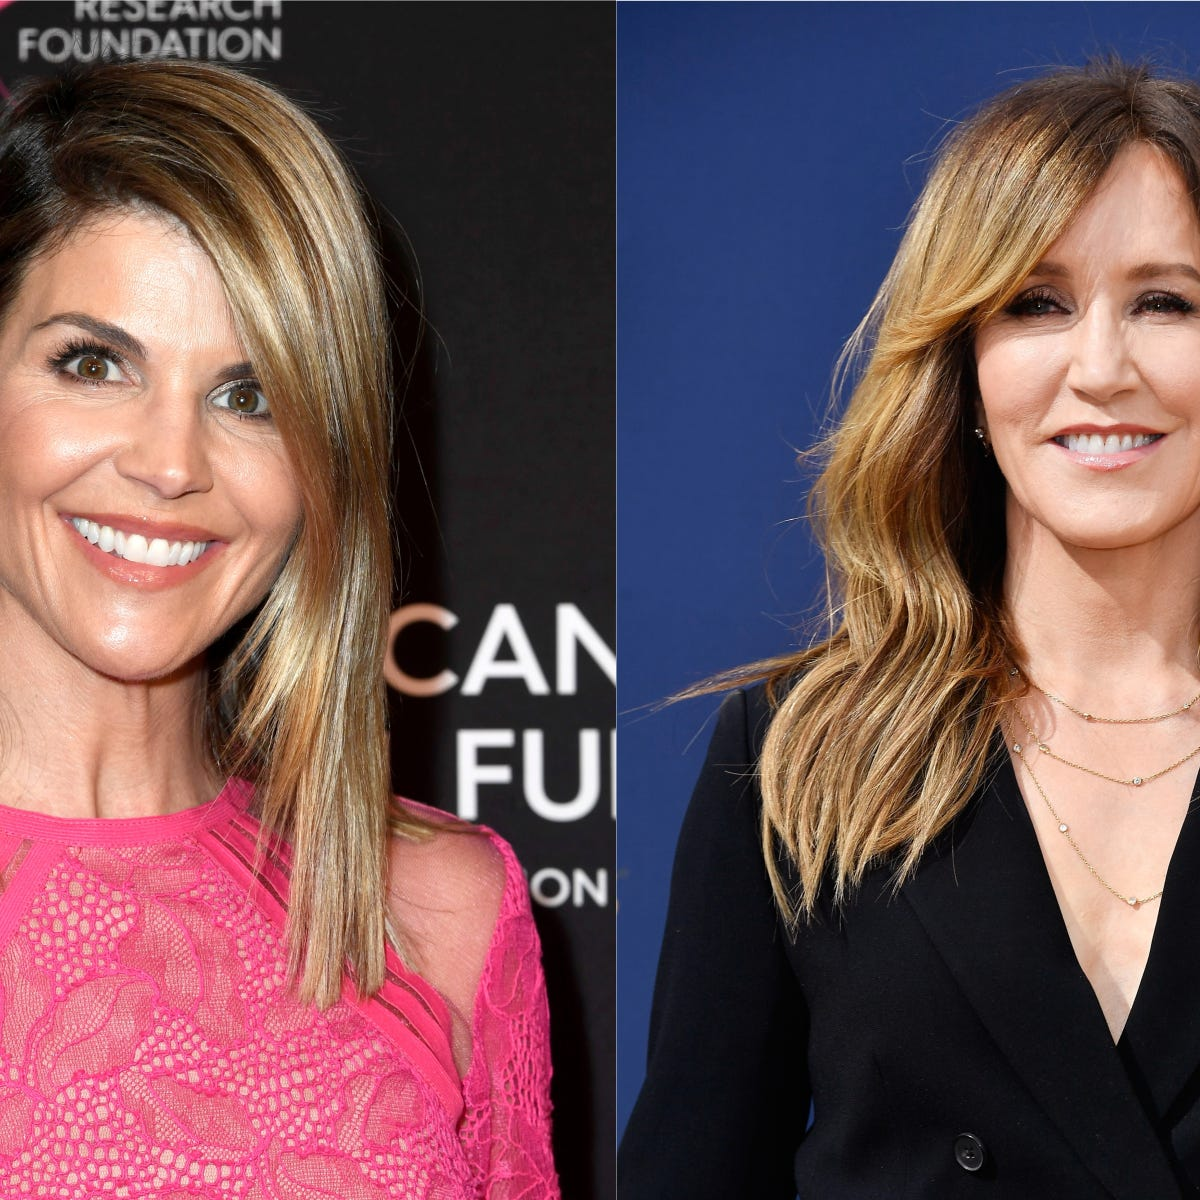 College admissions scandal: Here are the parents, coaches and others charged